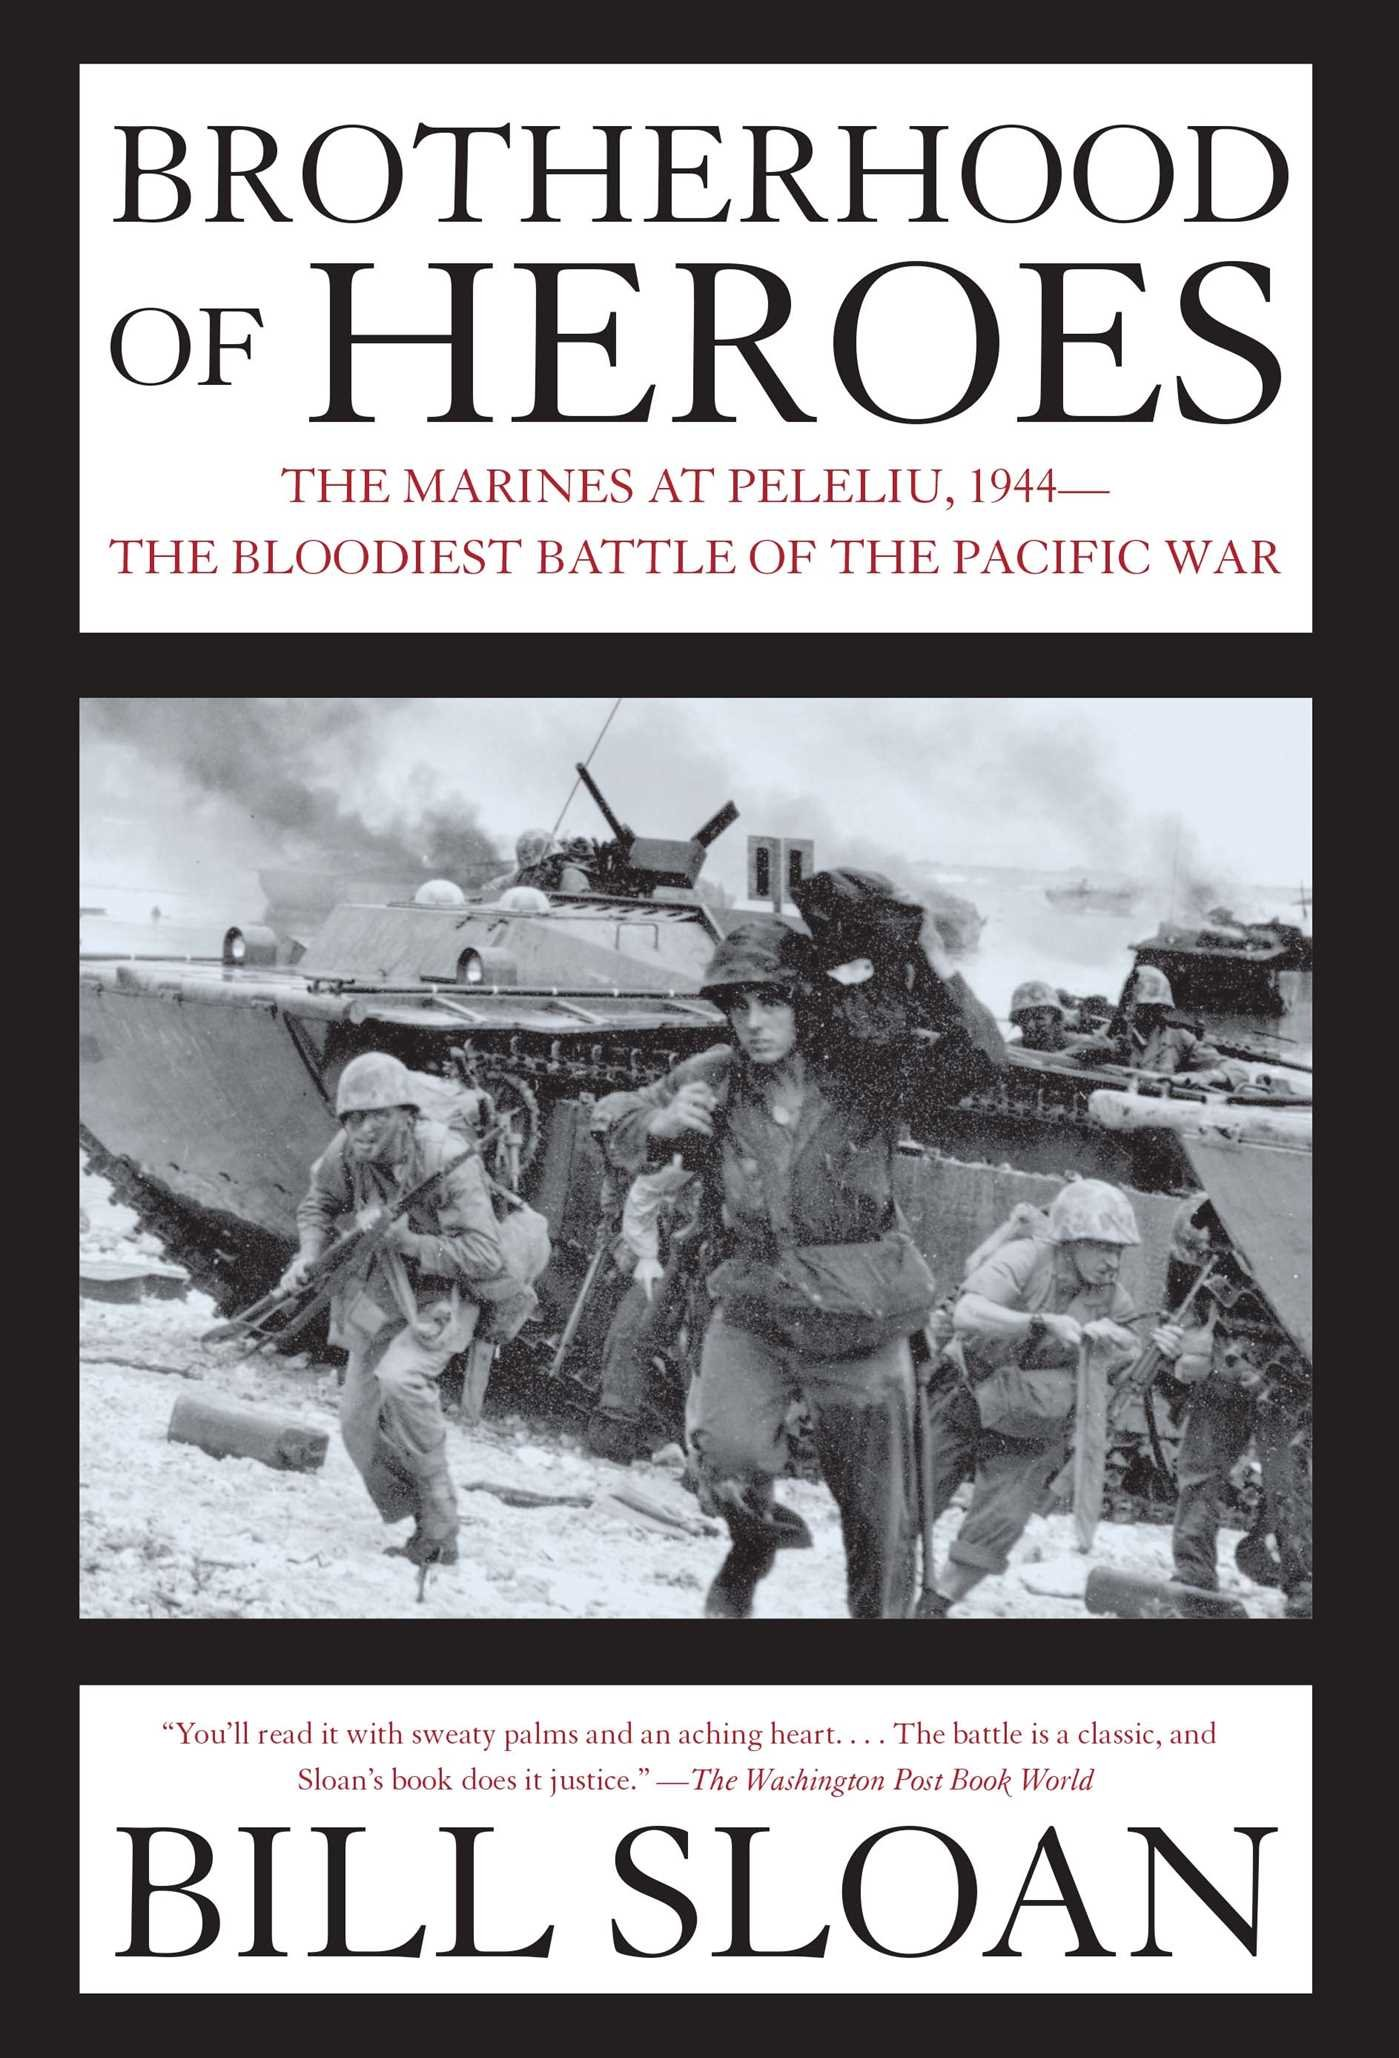 Brotherhood of Heroes: The Marines at Peleliu, 1944-The Bloodiest Battle of the Pacific War